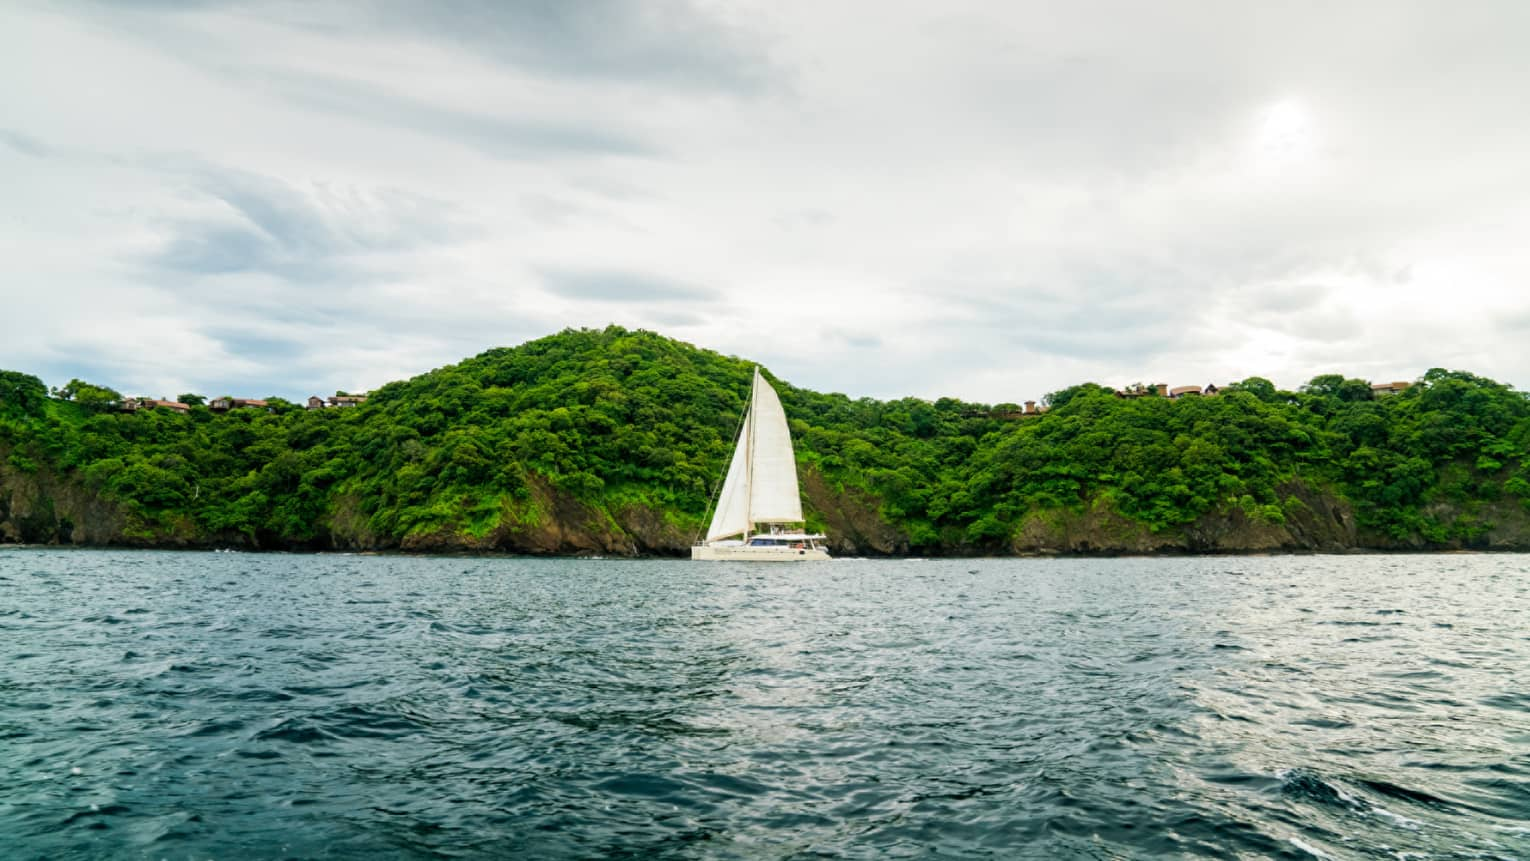 Catamaran boat with white sail on ocean in front of green mountain